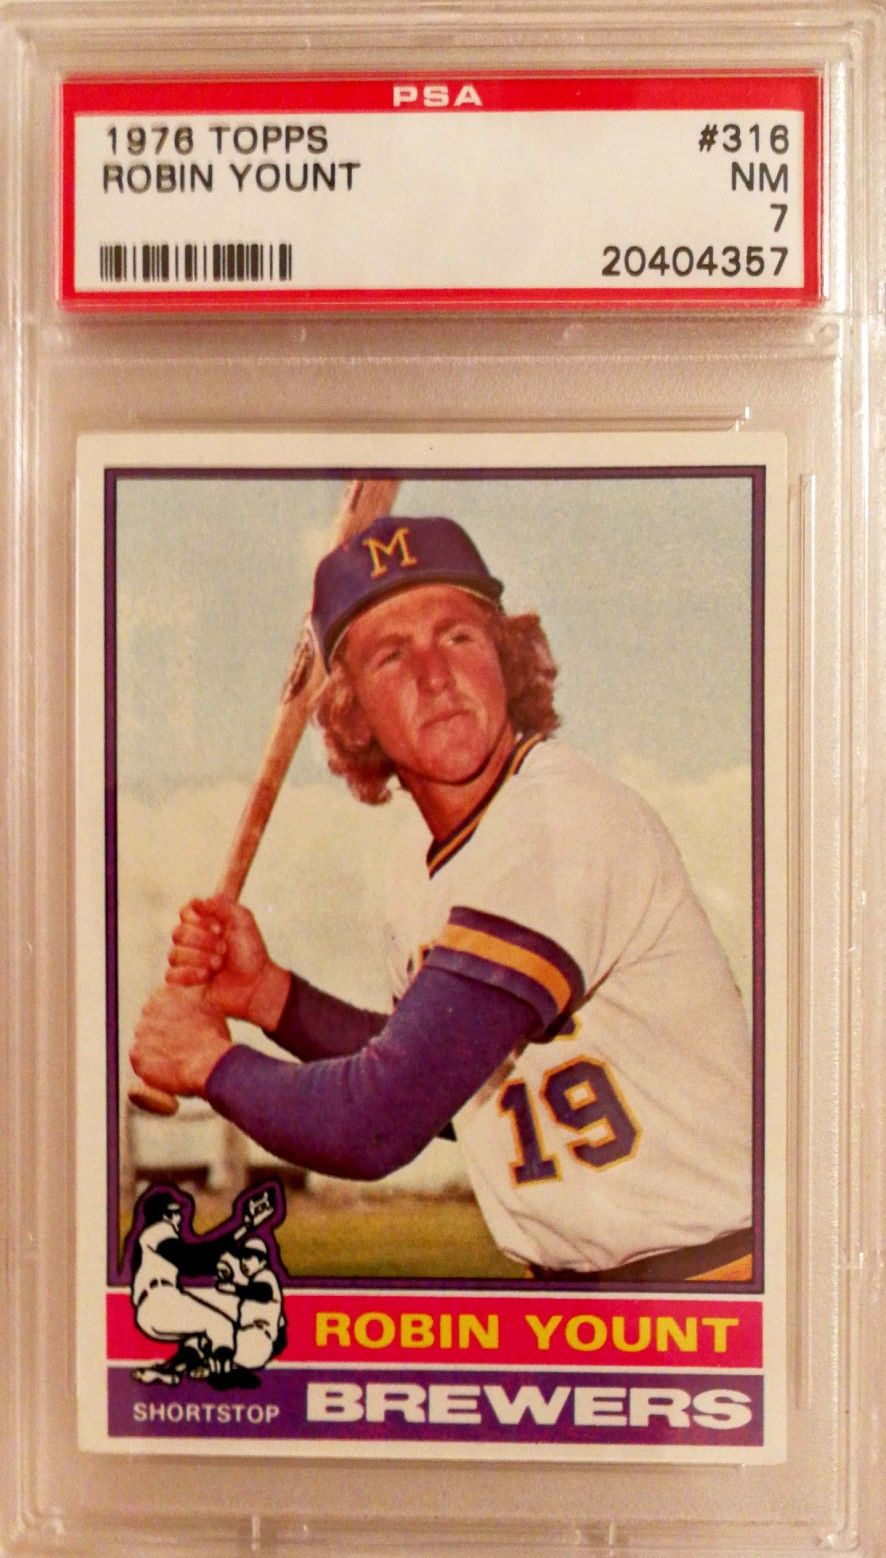 1976 topps robin yount with images baseball cards